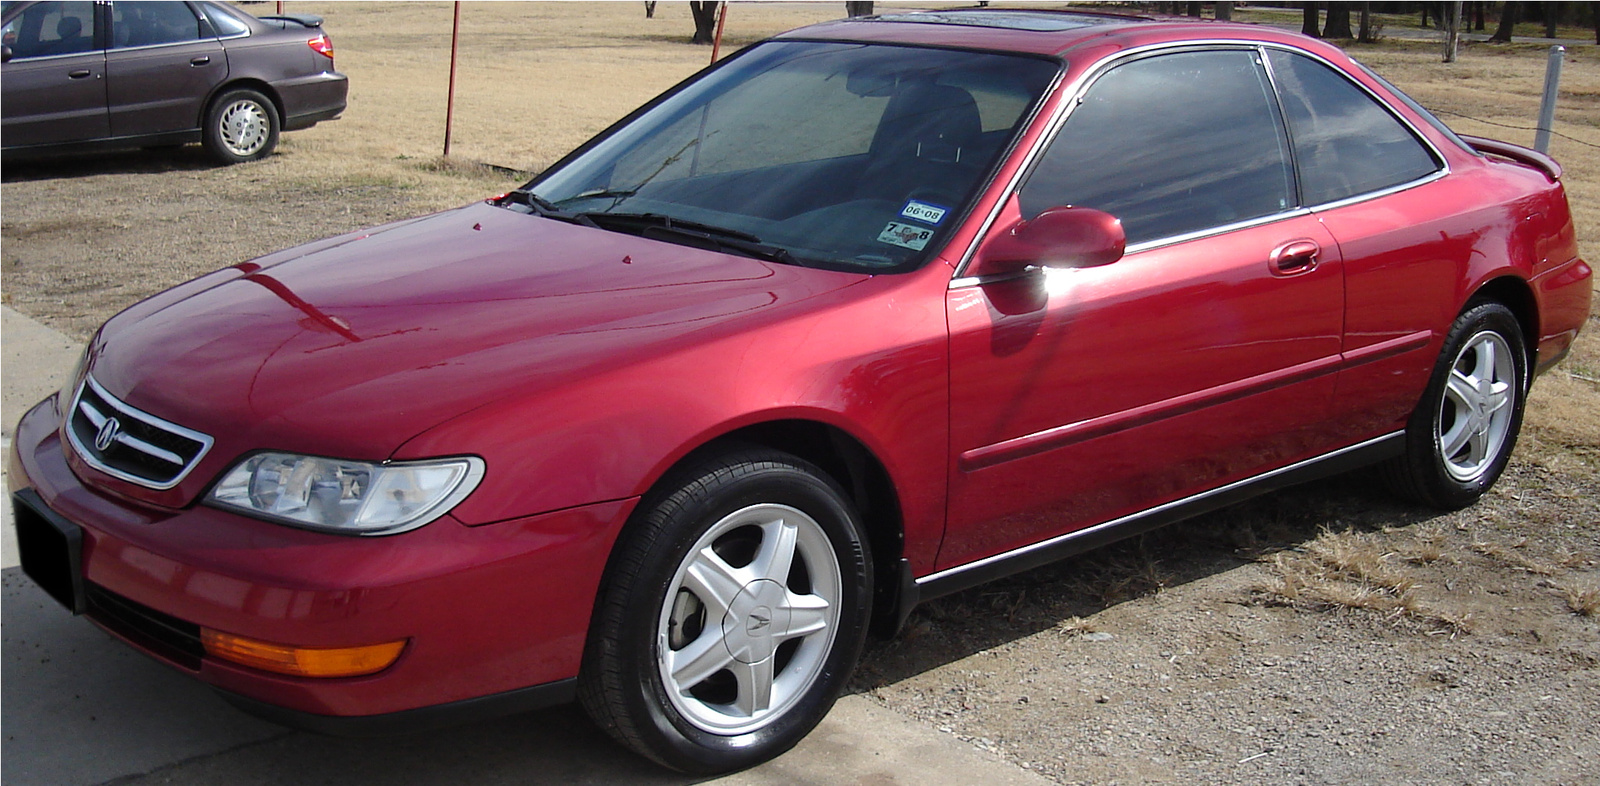 1997 Acura CL 2 Dr 3.0 Premium Coupe - Pictures - 1997 Acura CL 2 Dr 3 ...